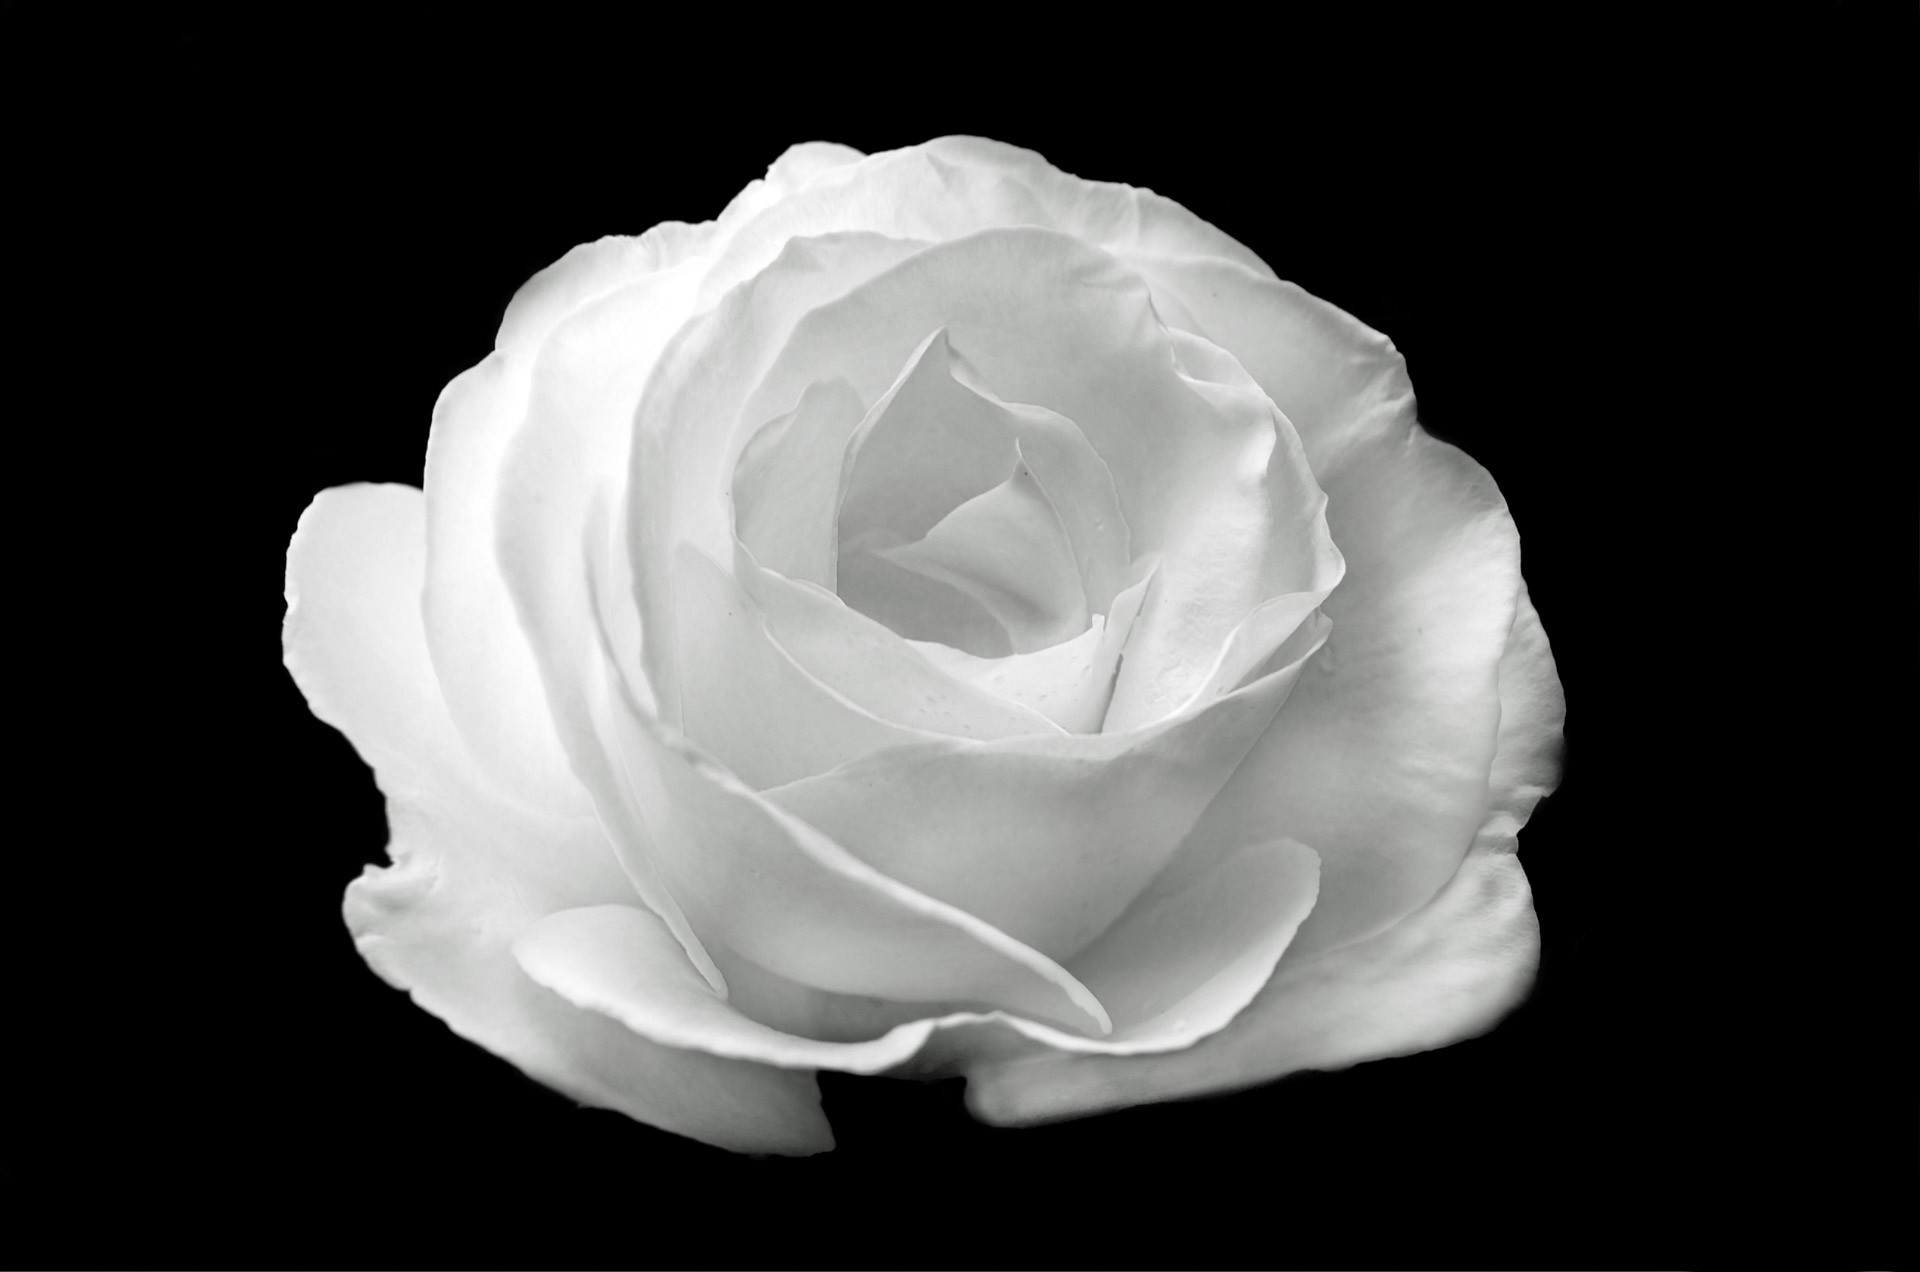 … white rose wallpapers images photos pictures backgrounds …